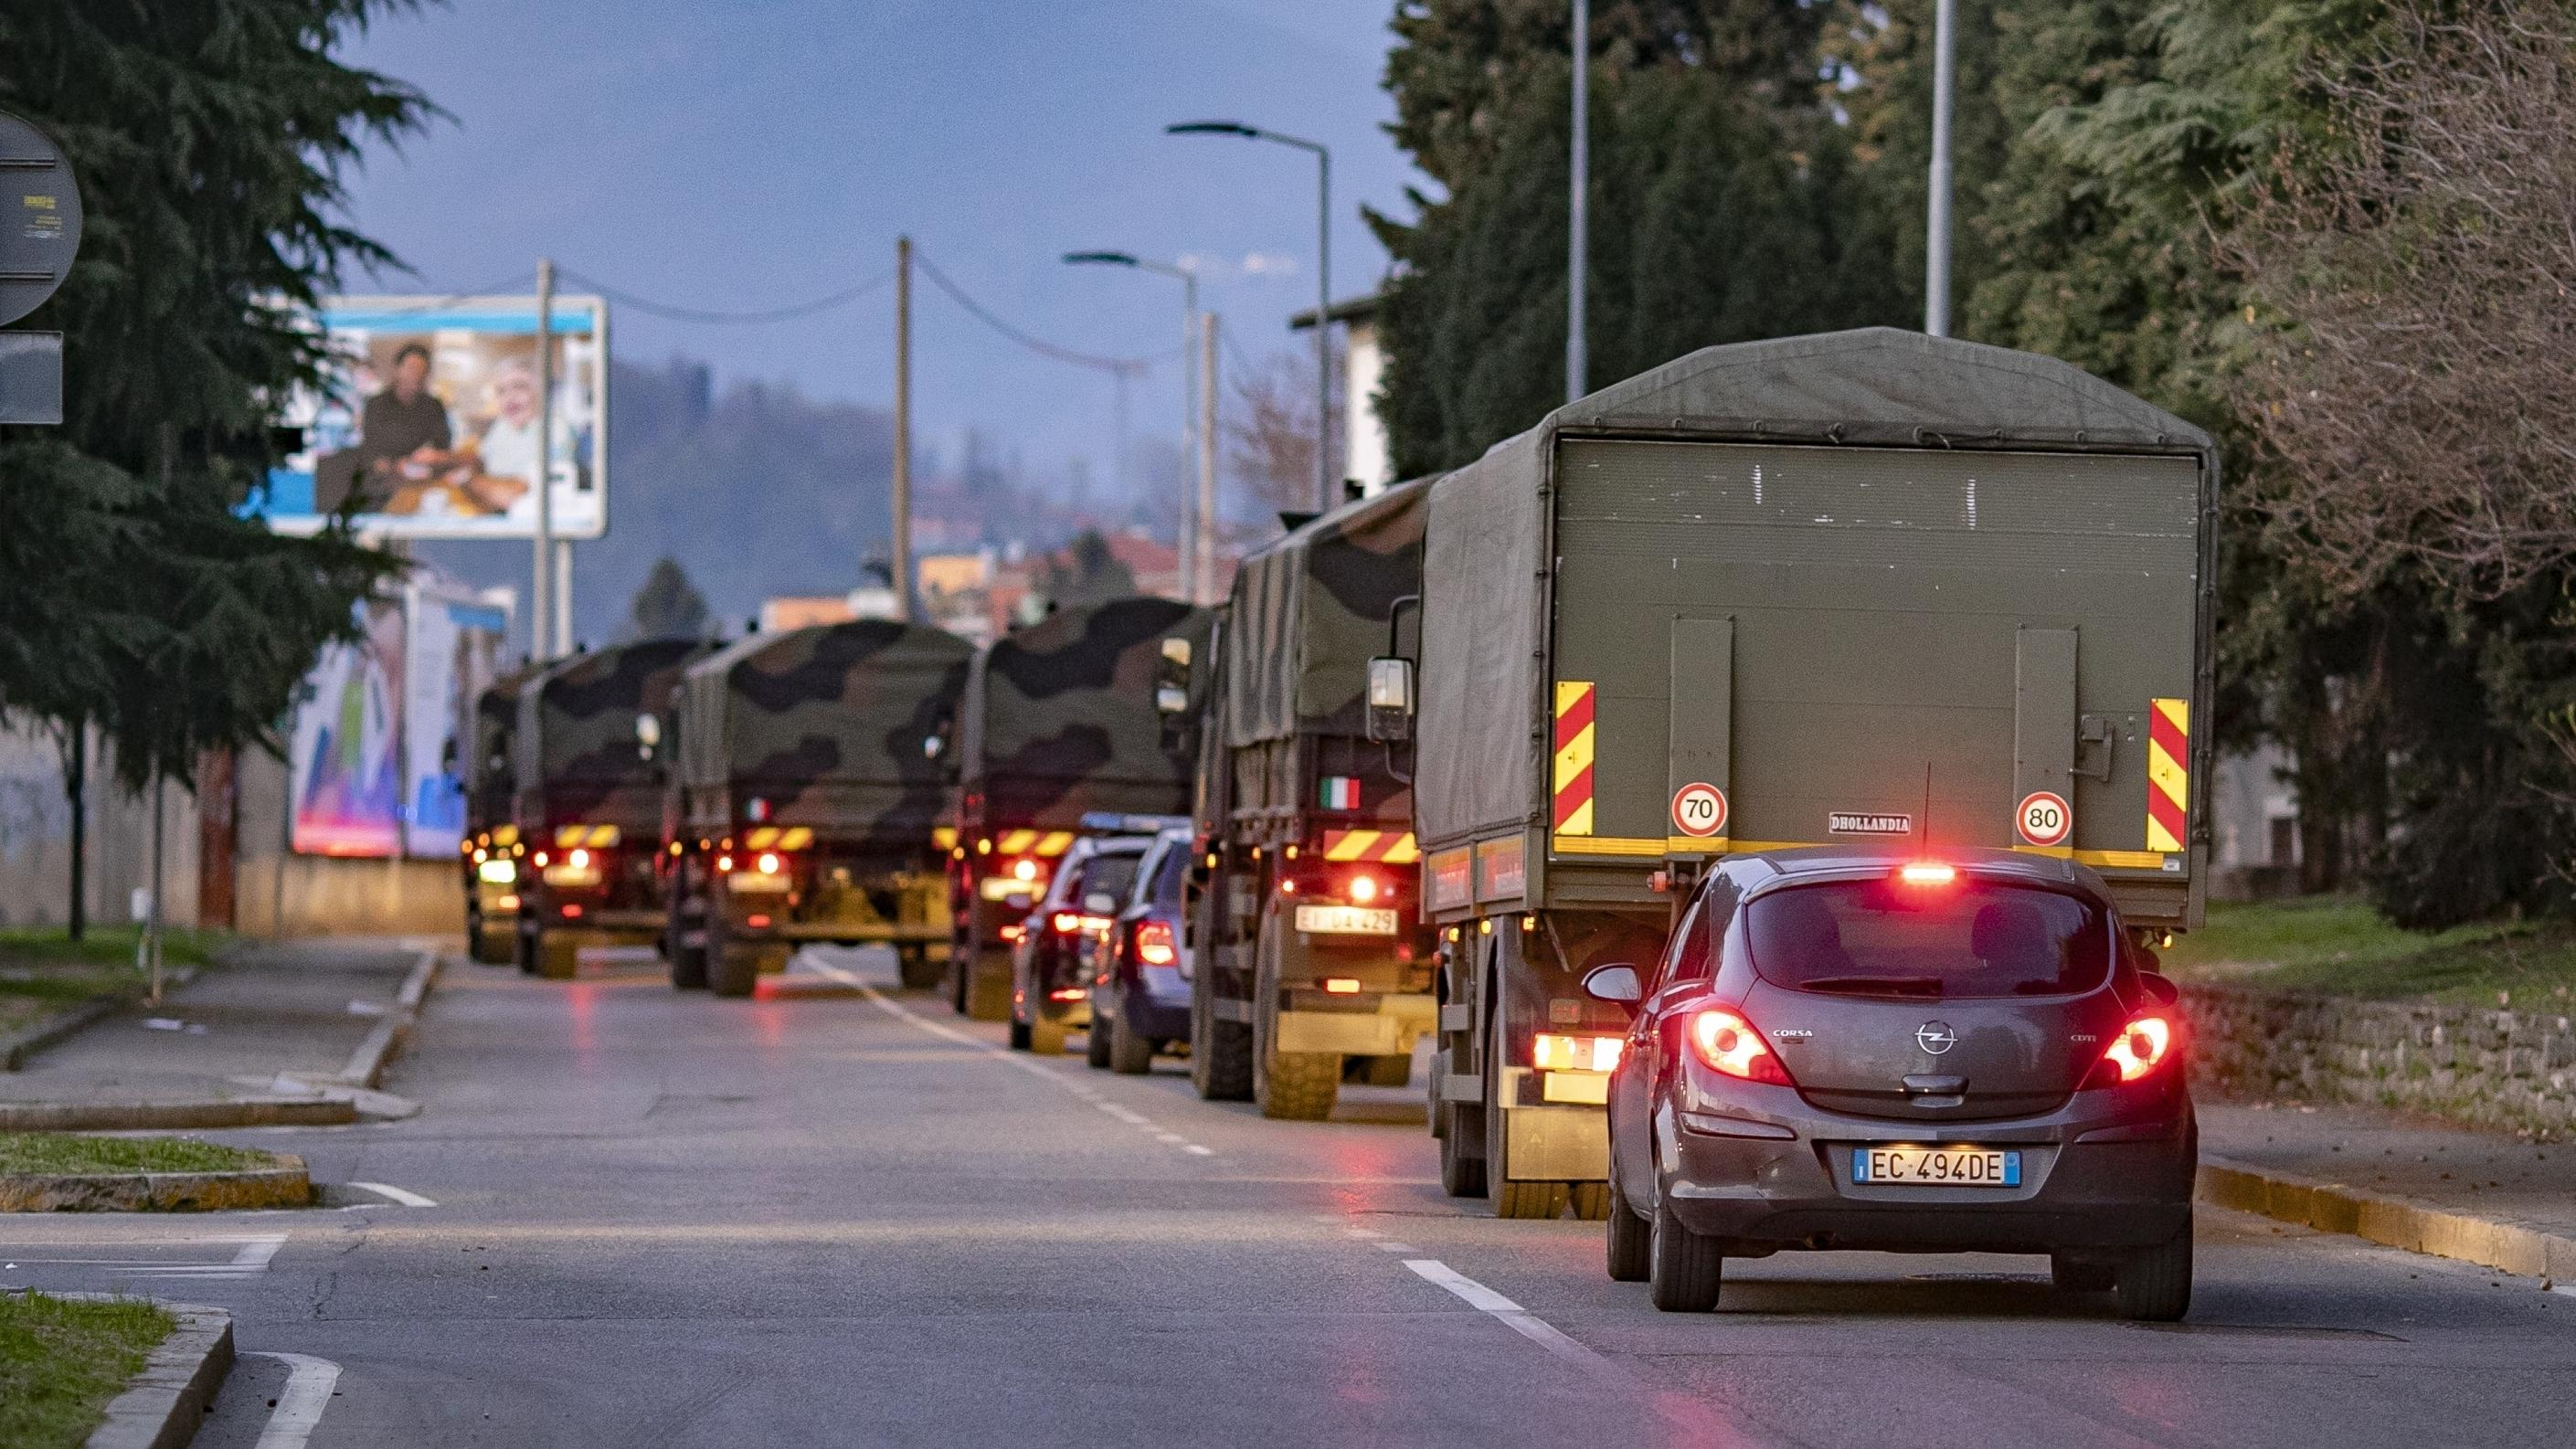 Chaos In Italy: Military Trucks Used To Take Coffins With People Dying Of Coronavirus